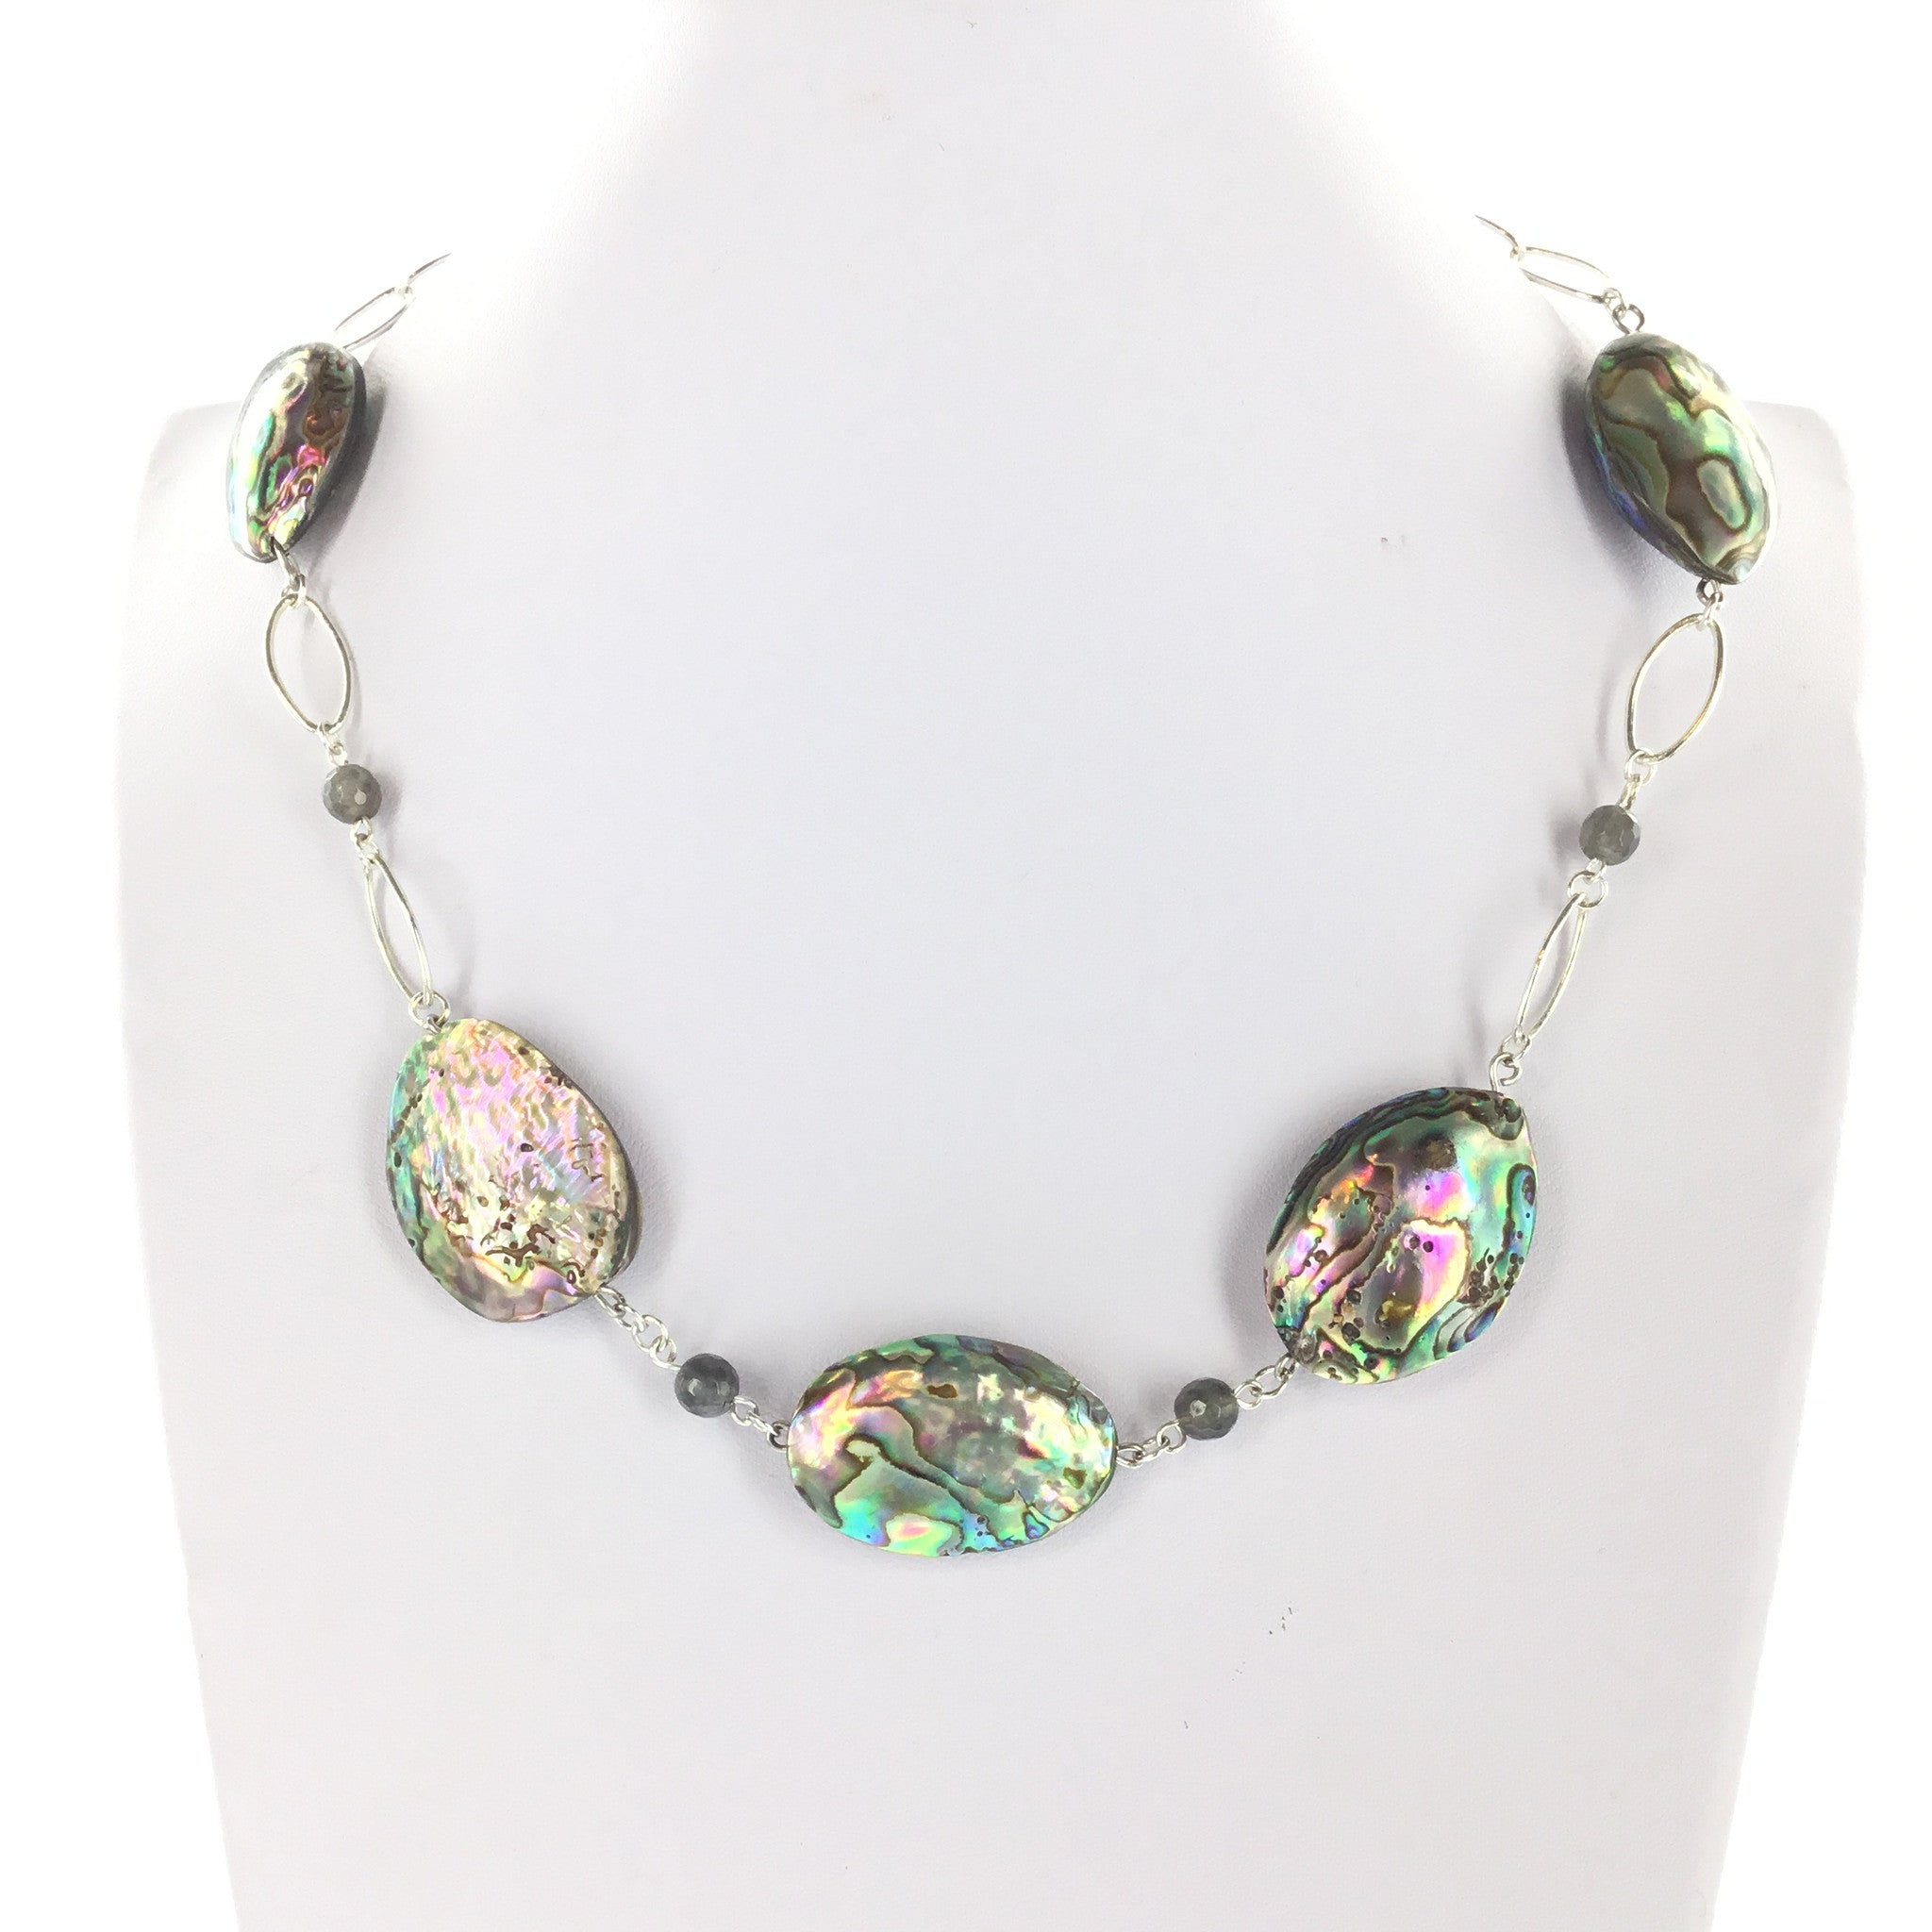 Abalone and Labradorite Necklace - Real Chic Boutique  - 2